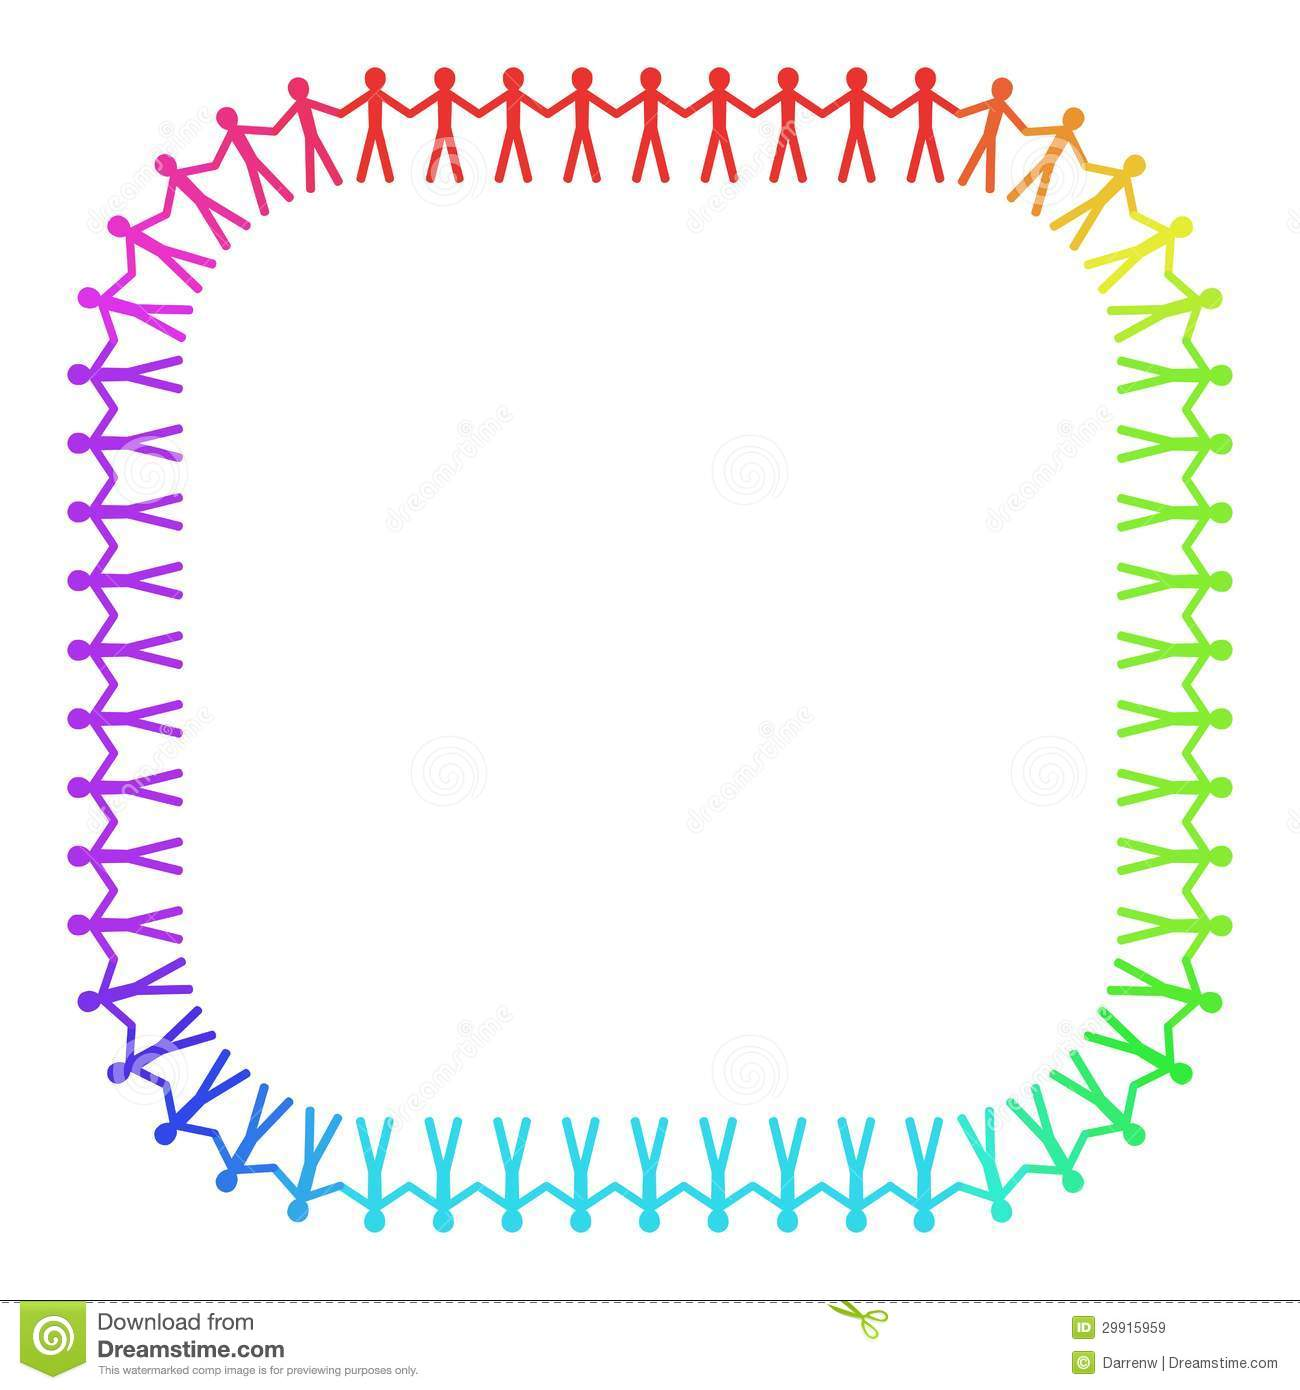 People border clipart clipart library stock Rounded People Frame Royalty Free Stock Images - Image: 29915959 clipart library stock